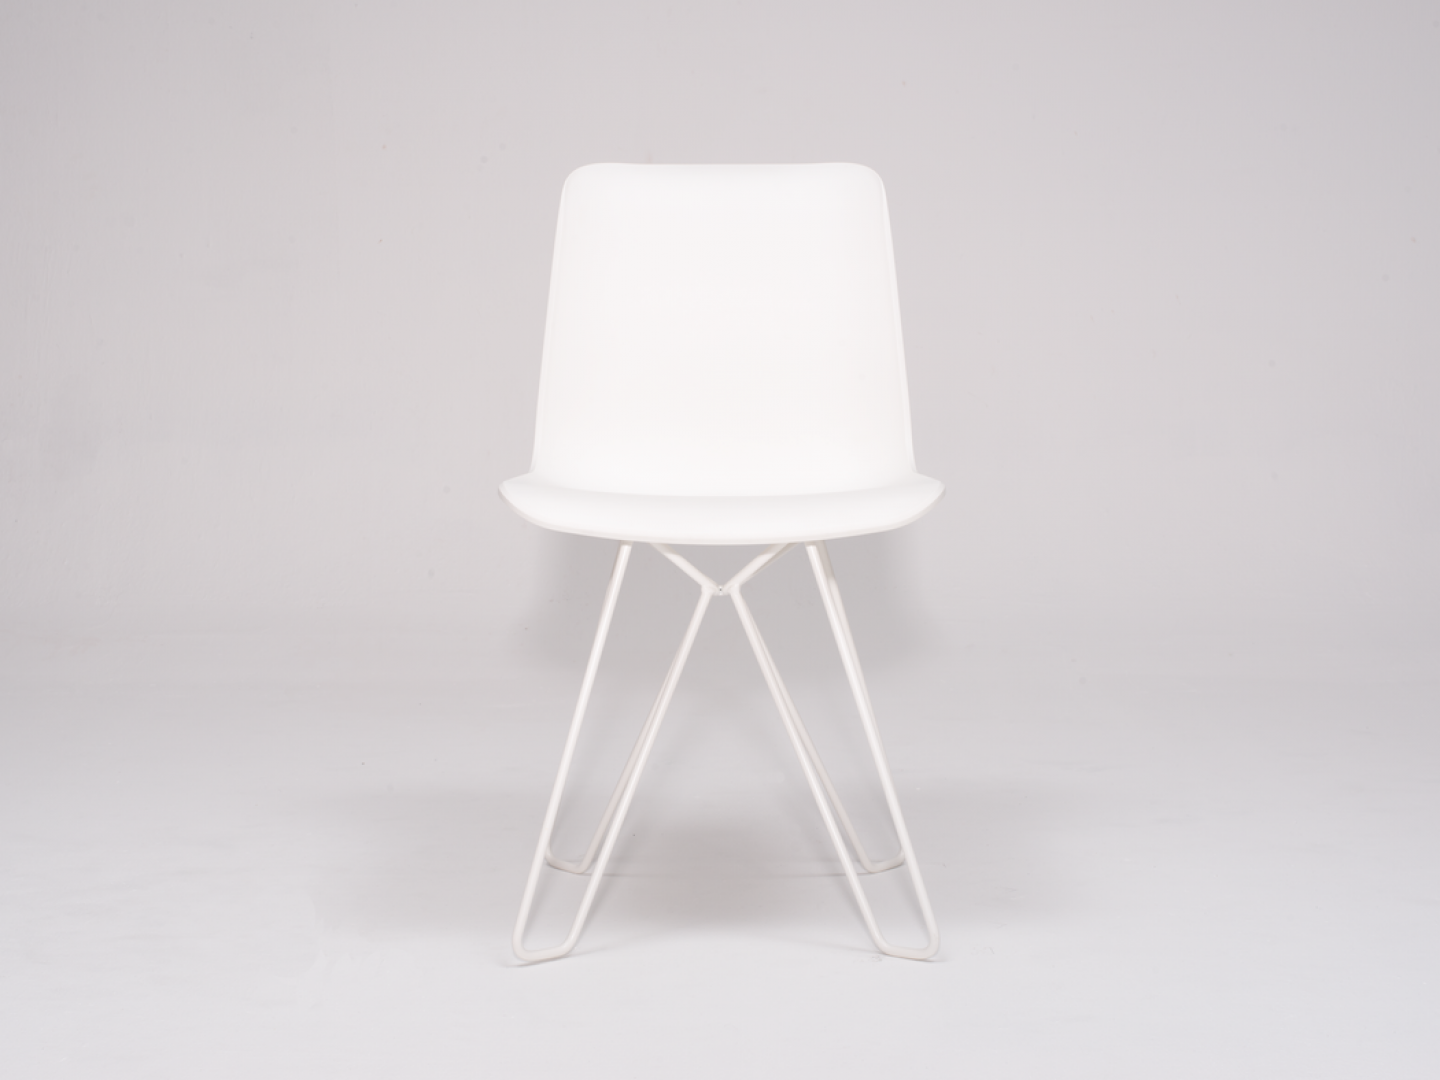 objekte-unserer-tage-08-studio-31-schaefer-chair-(high-res)